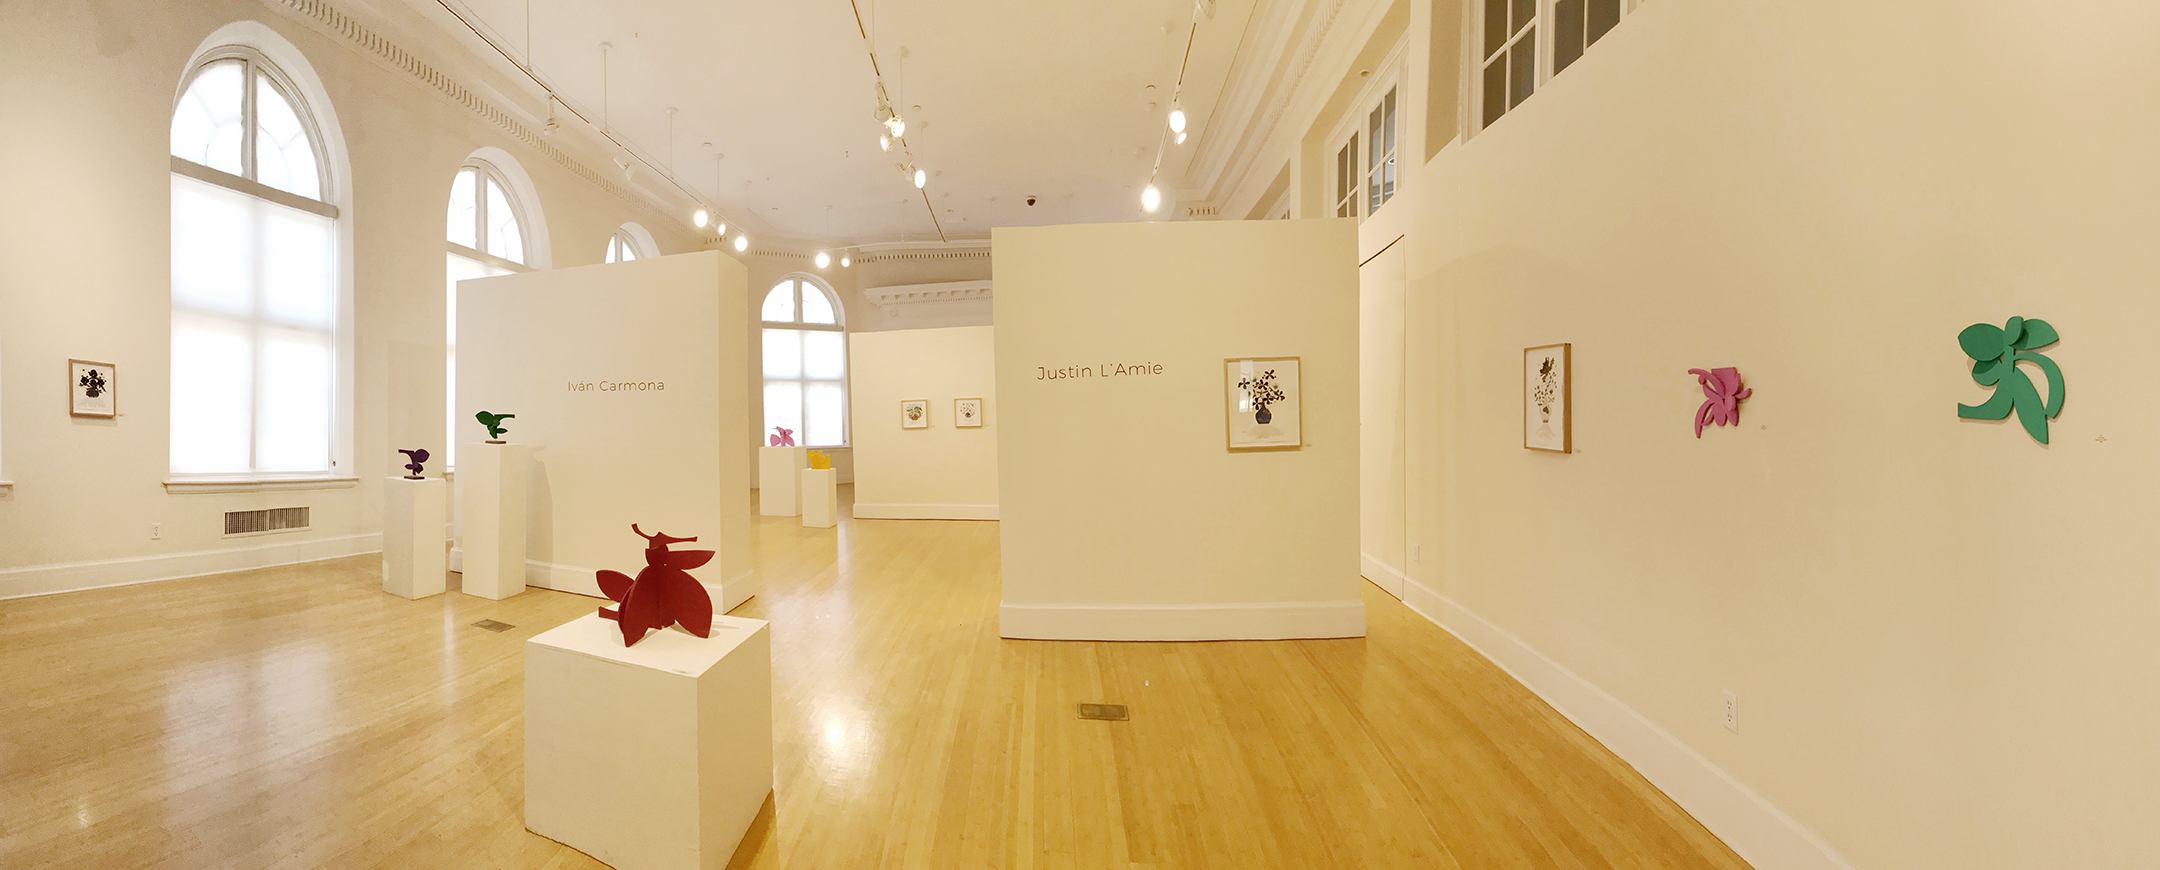 Full view of gallery with large windows and wood floors. with colorful sculptures and paintings on the walls.